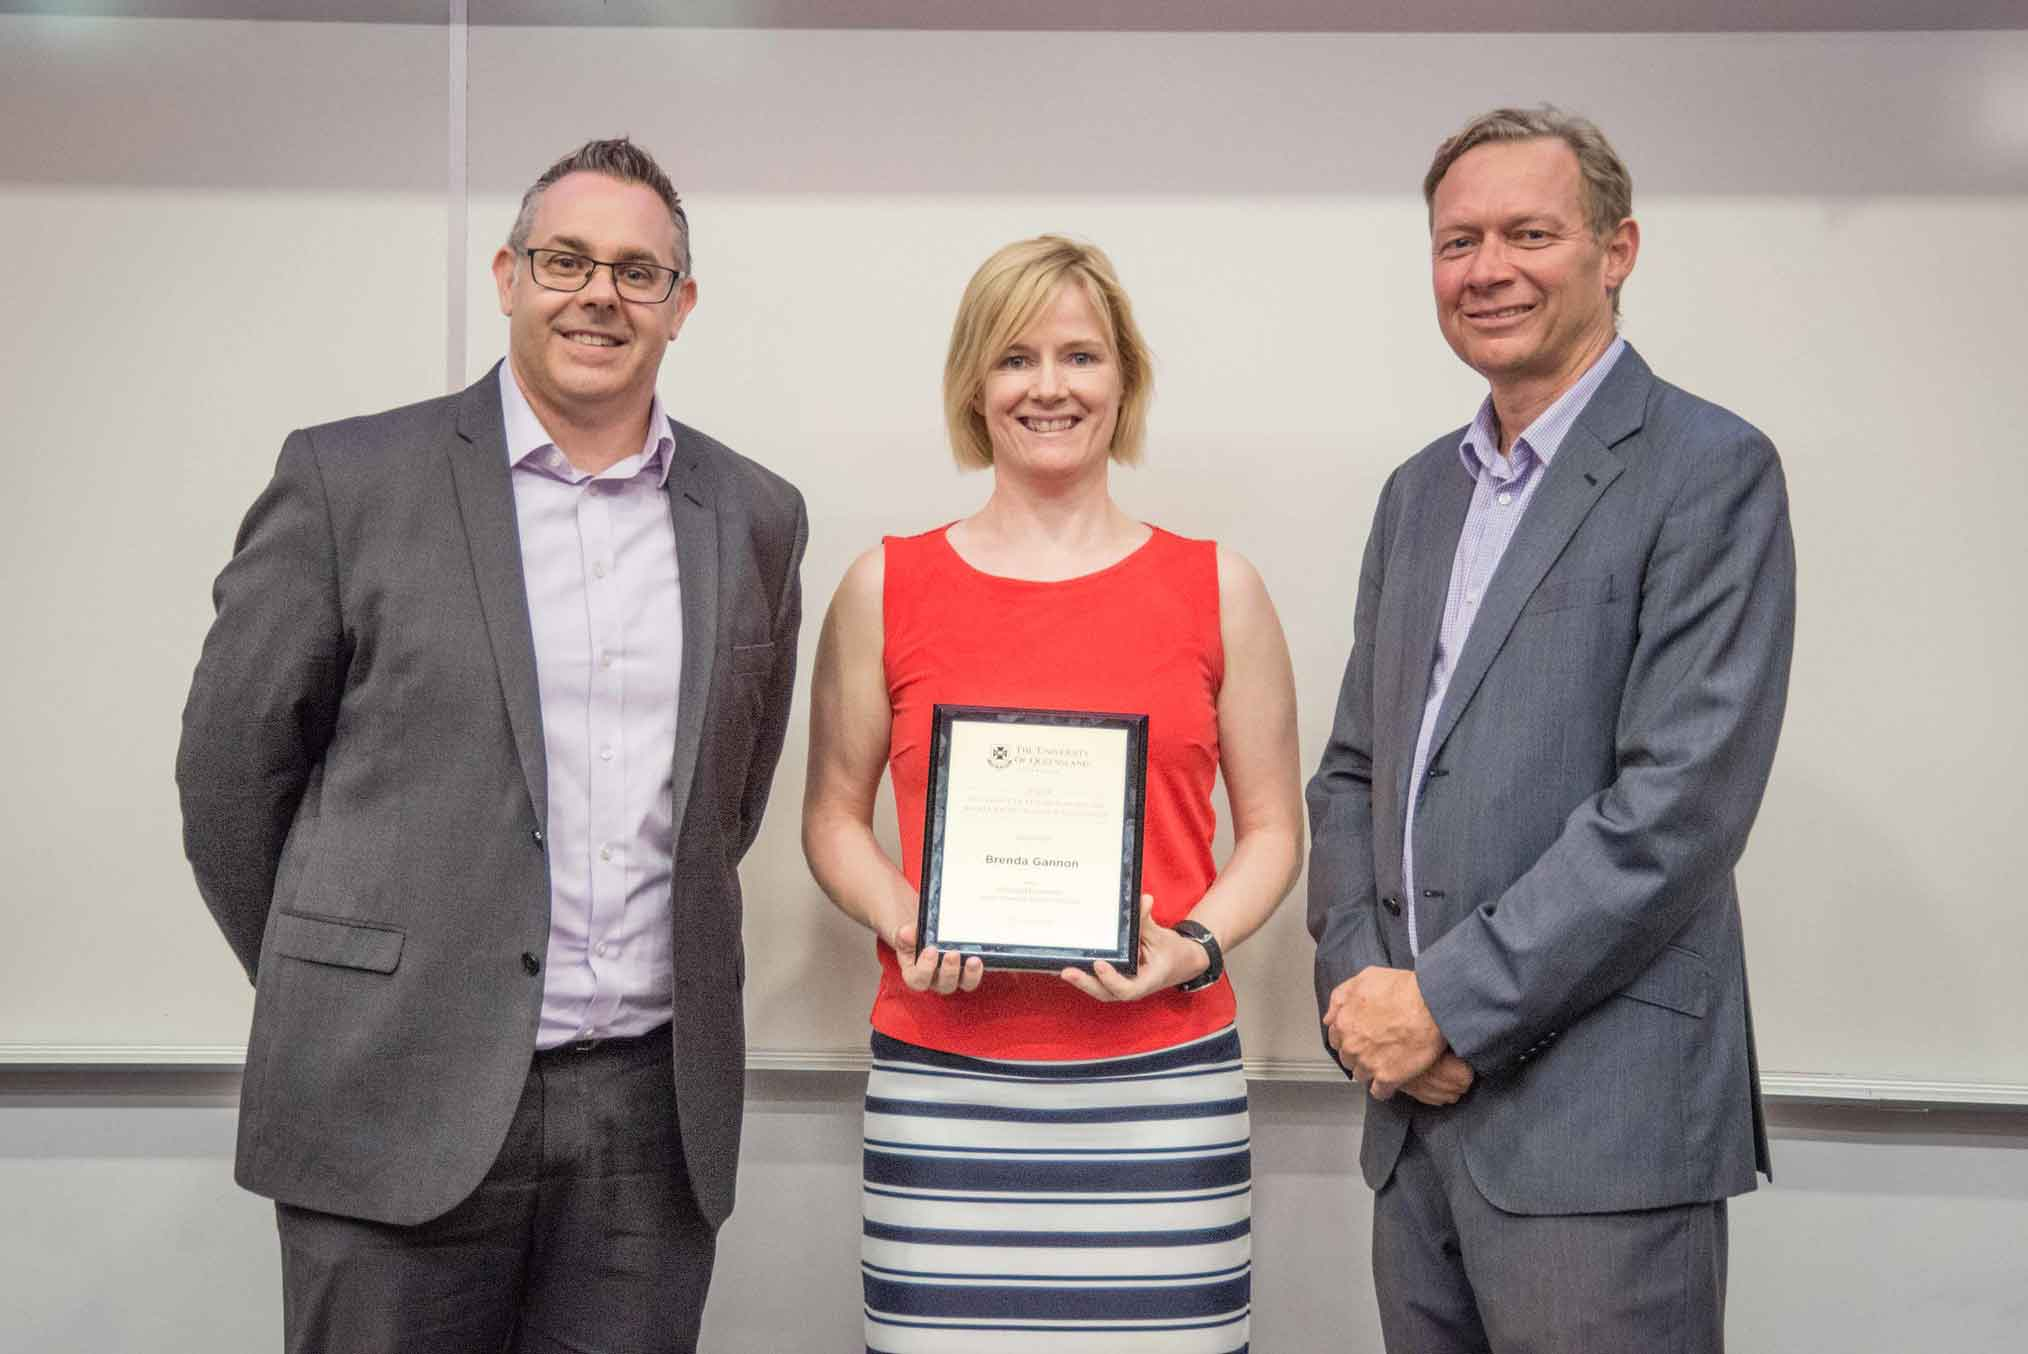 This is an image of Professor Brent Ritchie, award-winner Professor Brenda Gannon, and Professor Andrew Griffiths